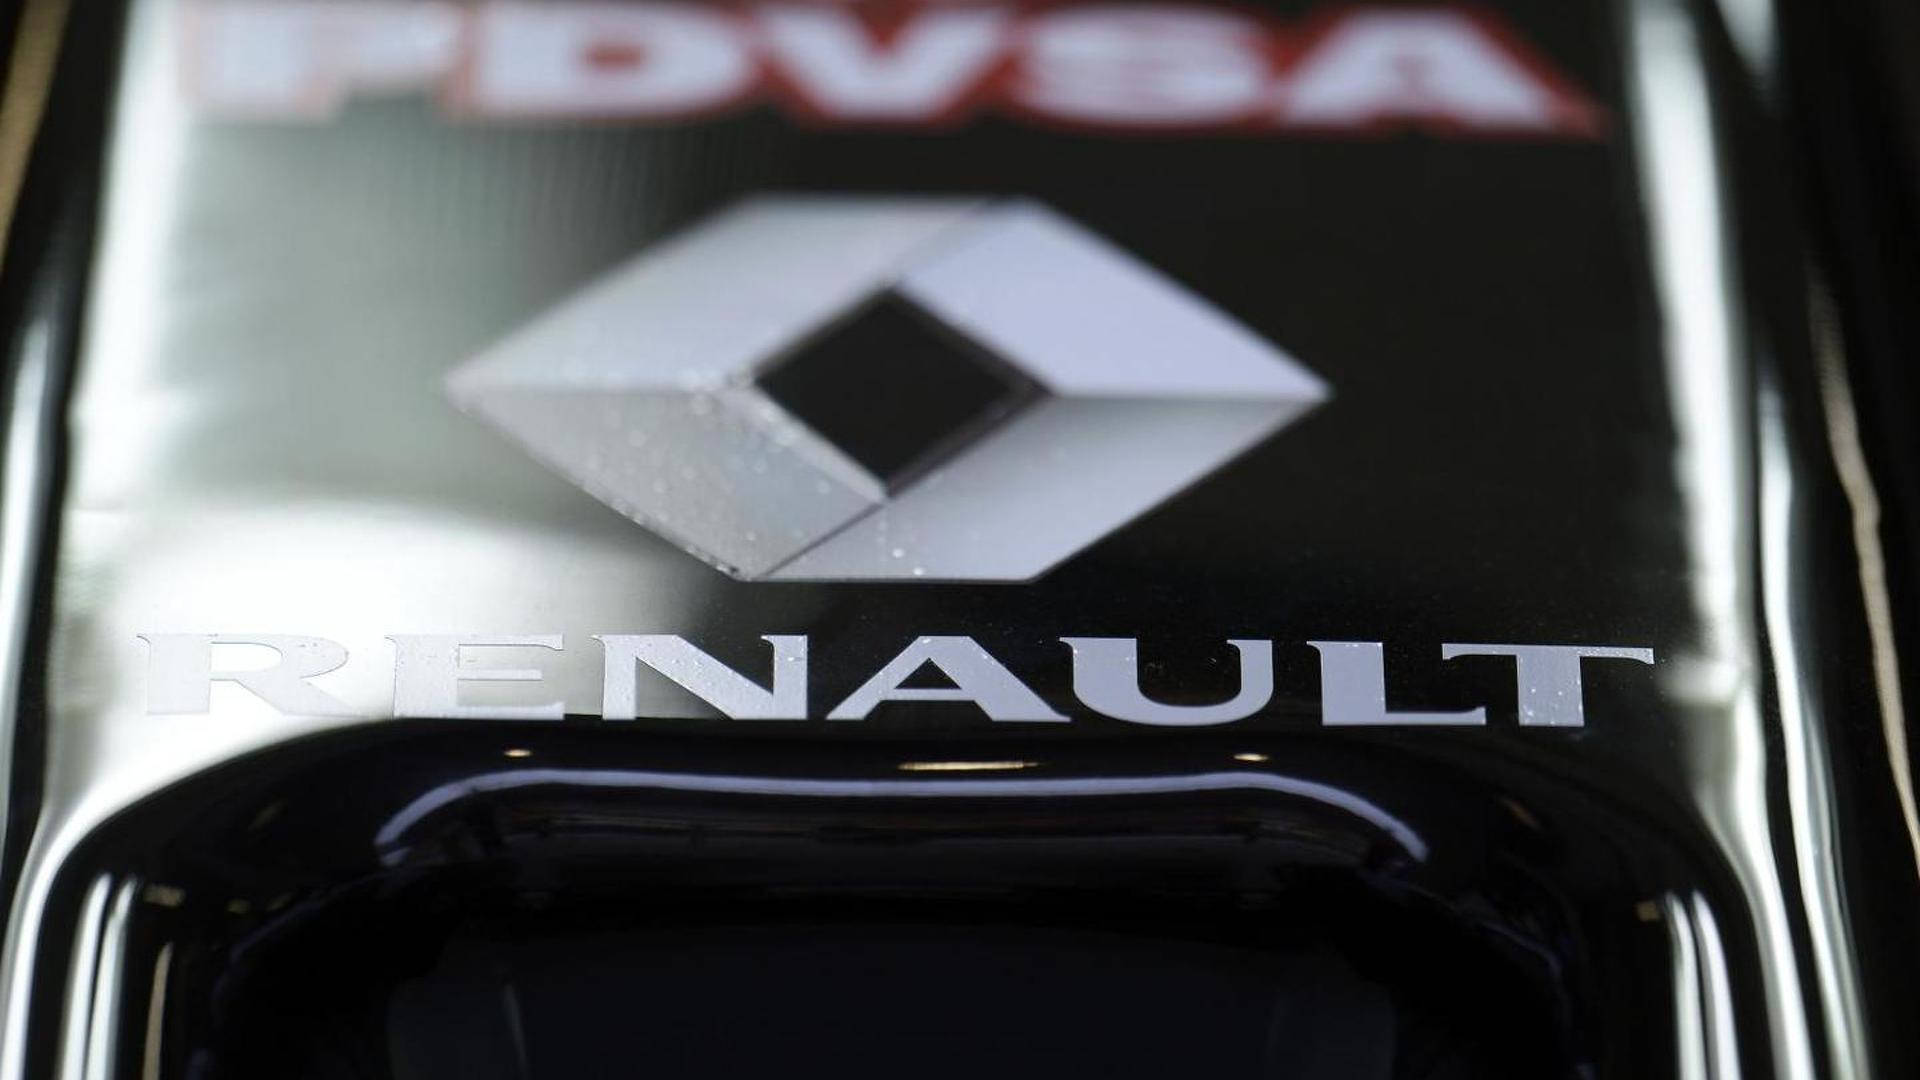 Lotus isolated as non-paying Renault team